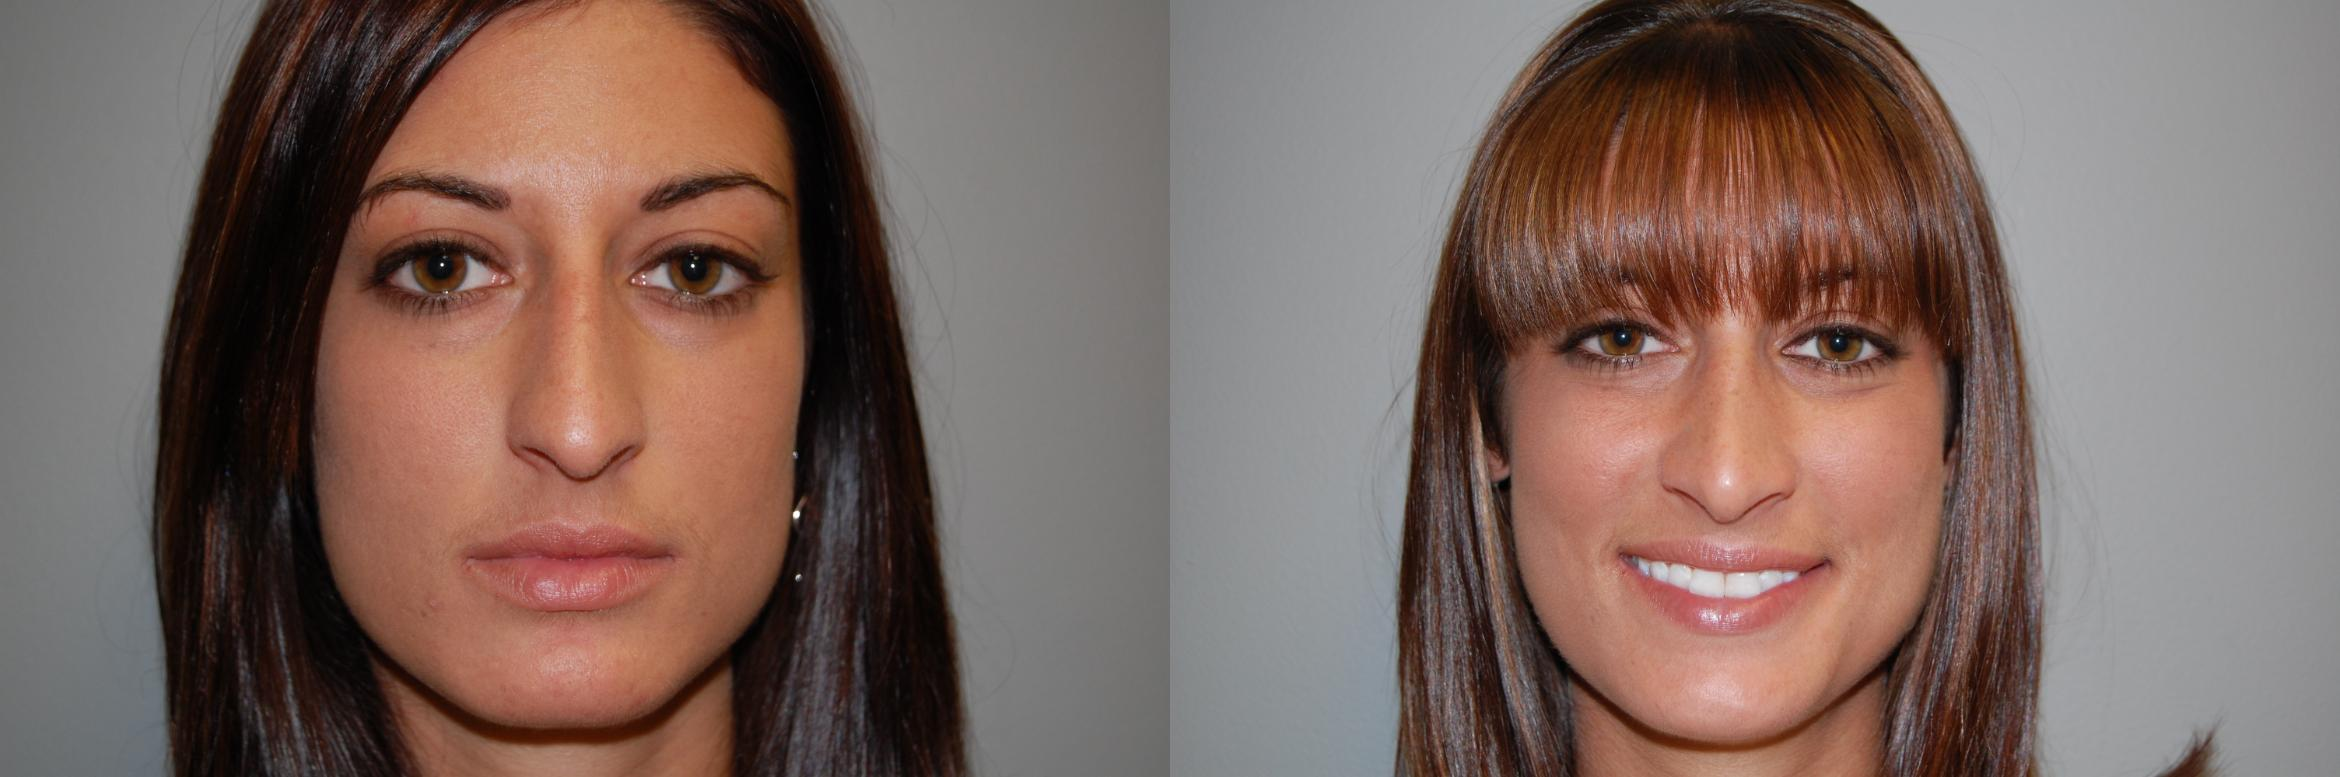 Rhinoplasty Before & After Photo | Longmeadow, MA | Aesthetic Plastic & Reconstructive Surgery